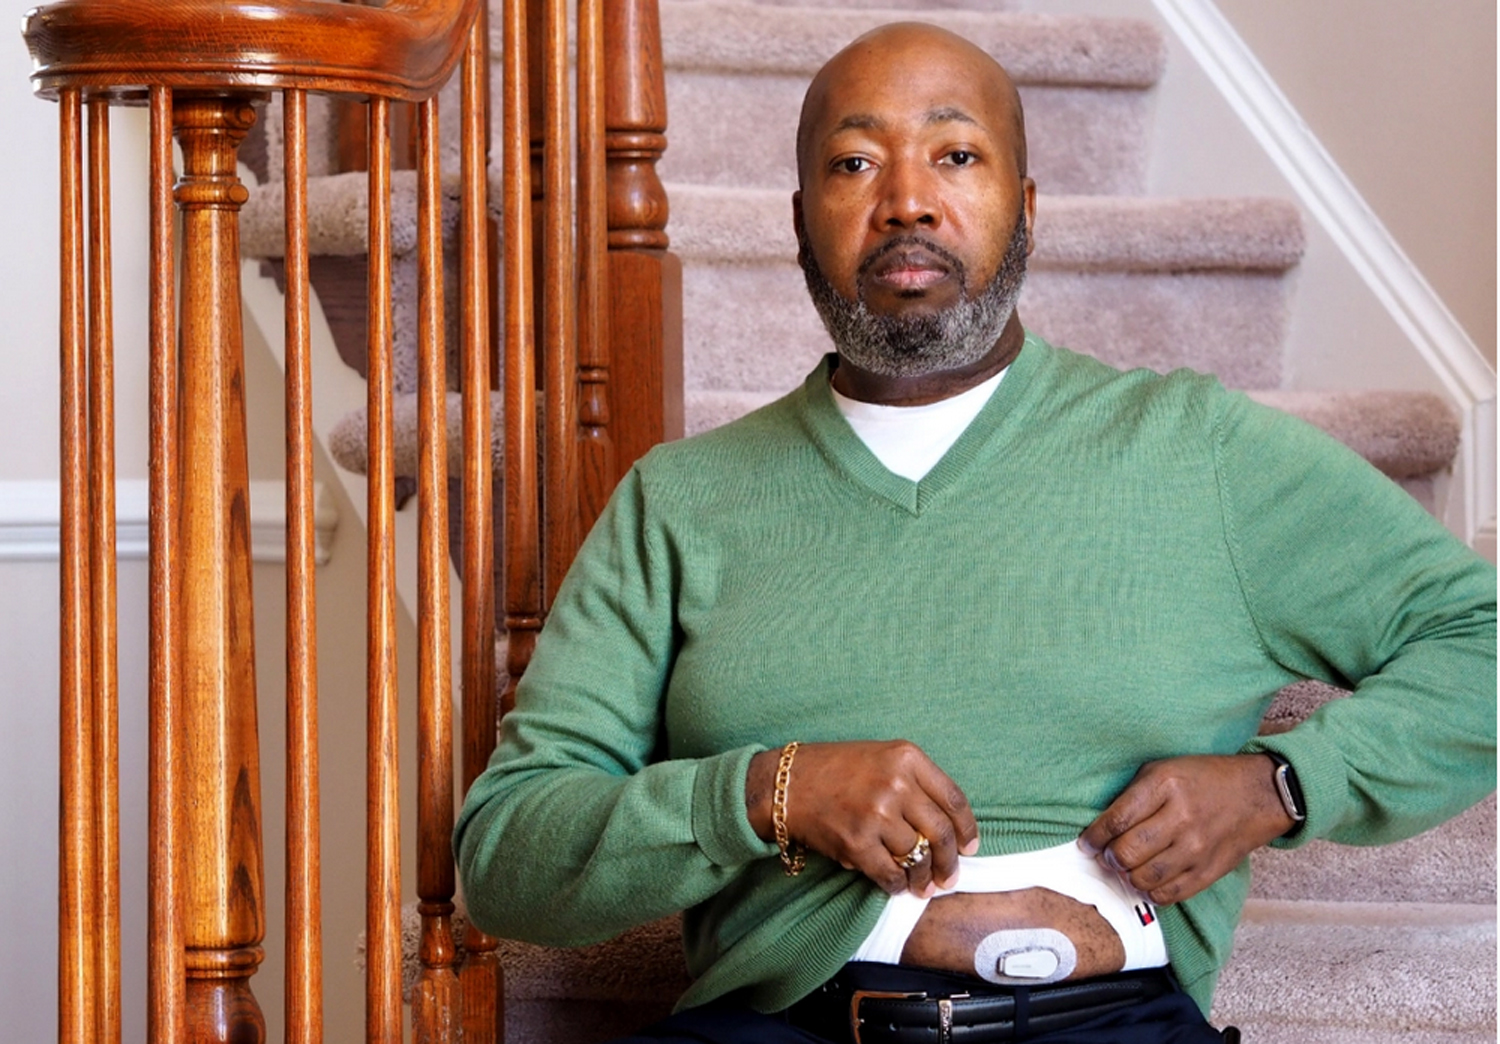 Trevis Hall of Fort Washington, Maryland, credits a continuous glucose monitor with helping him get his diabetes under control. Makers of the device say the instant feedback provides a way to motivate healthier eating and exercise. But experts point say that the few studies of the monitors show conflicting results.